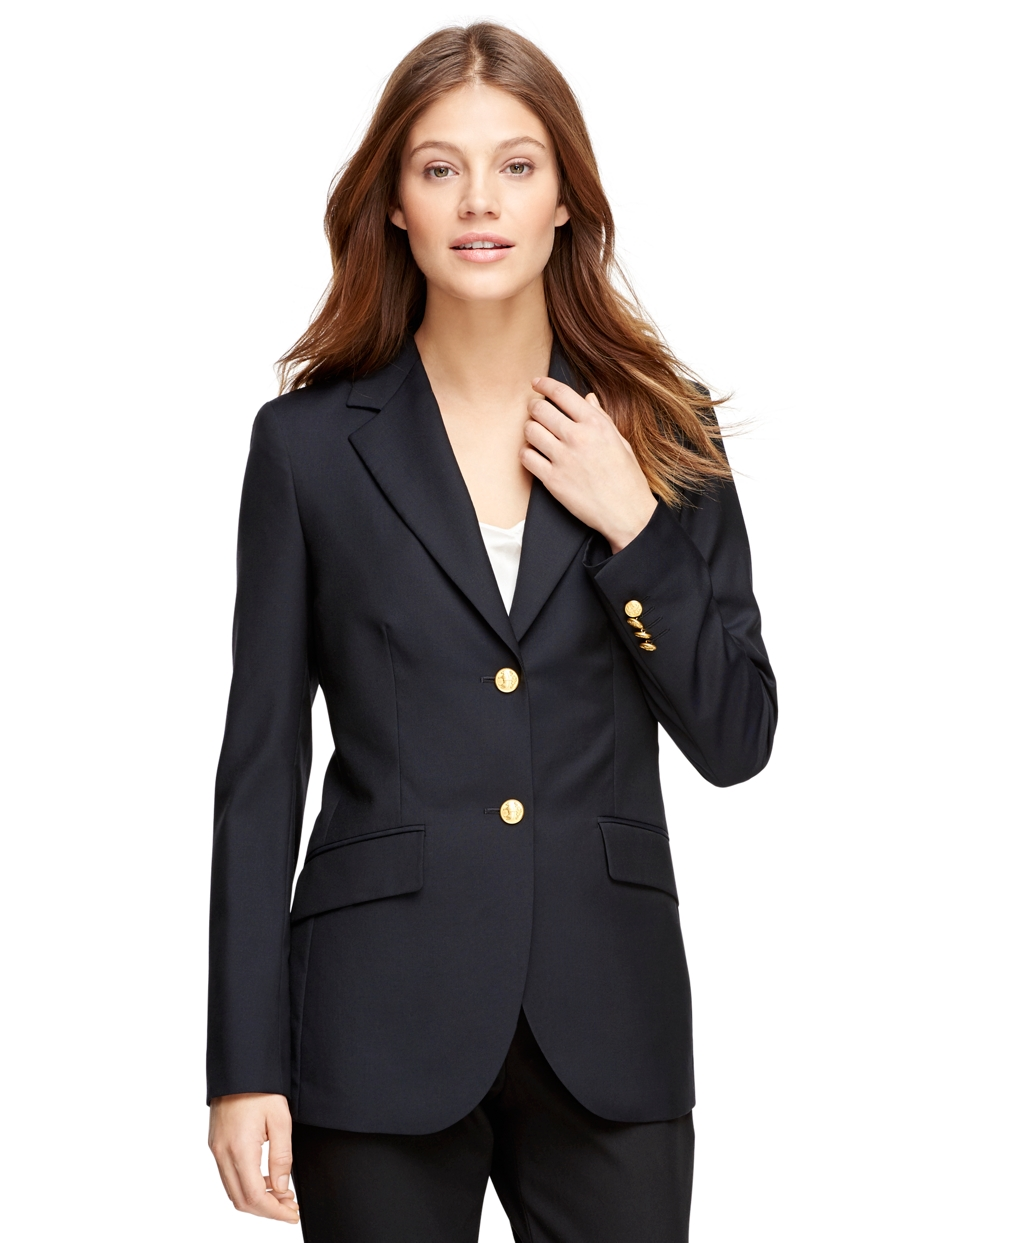 Women's Classic Single-Breasted Navy Blue Blazer | Brooks Brothers